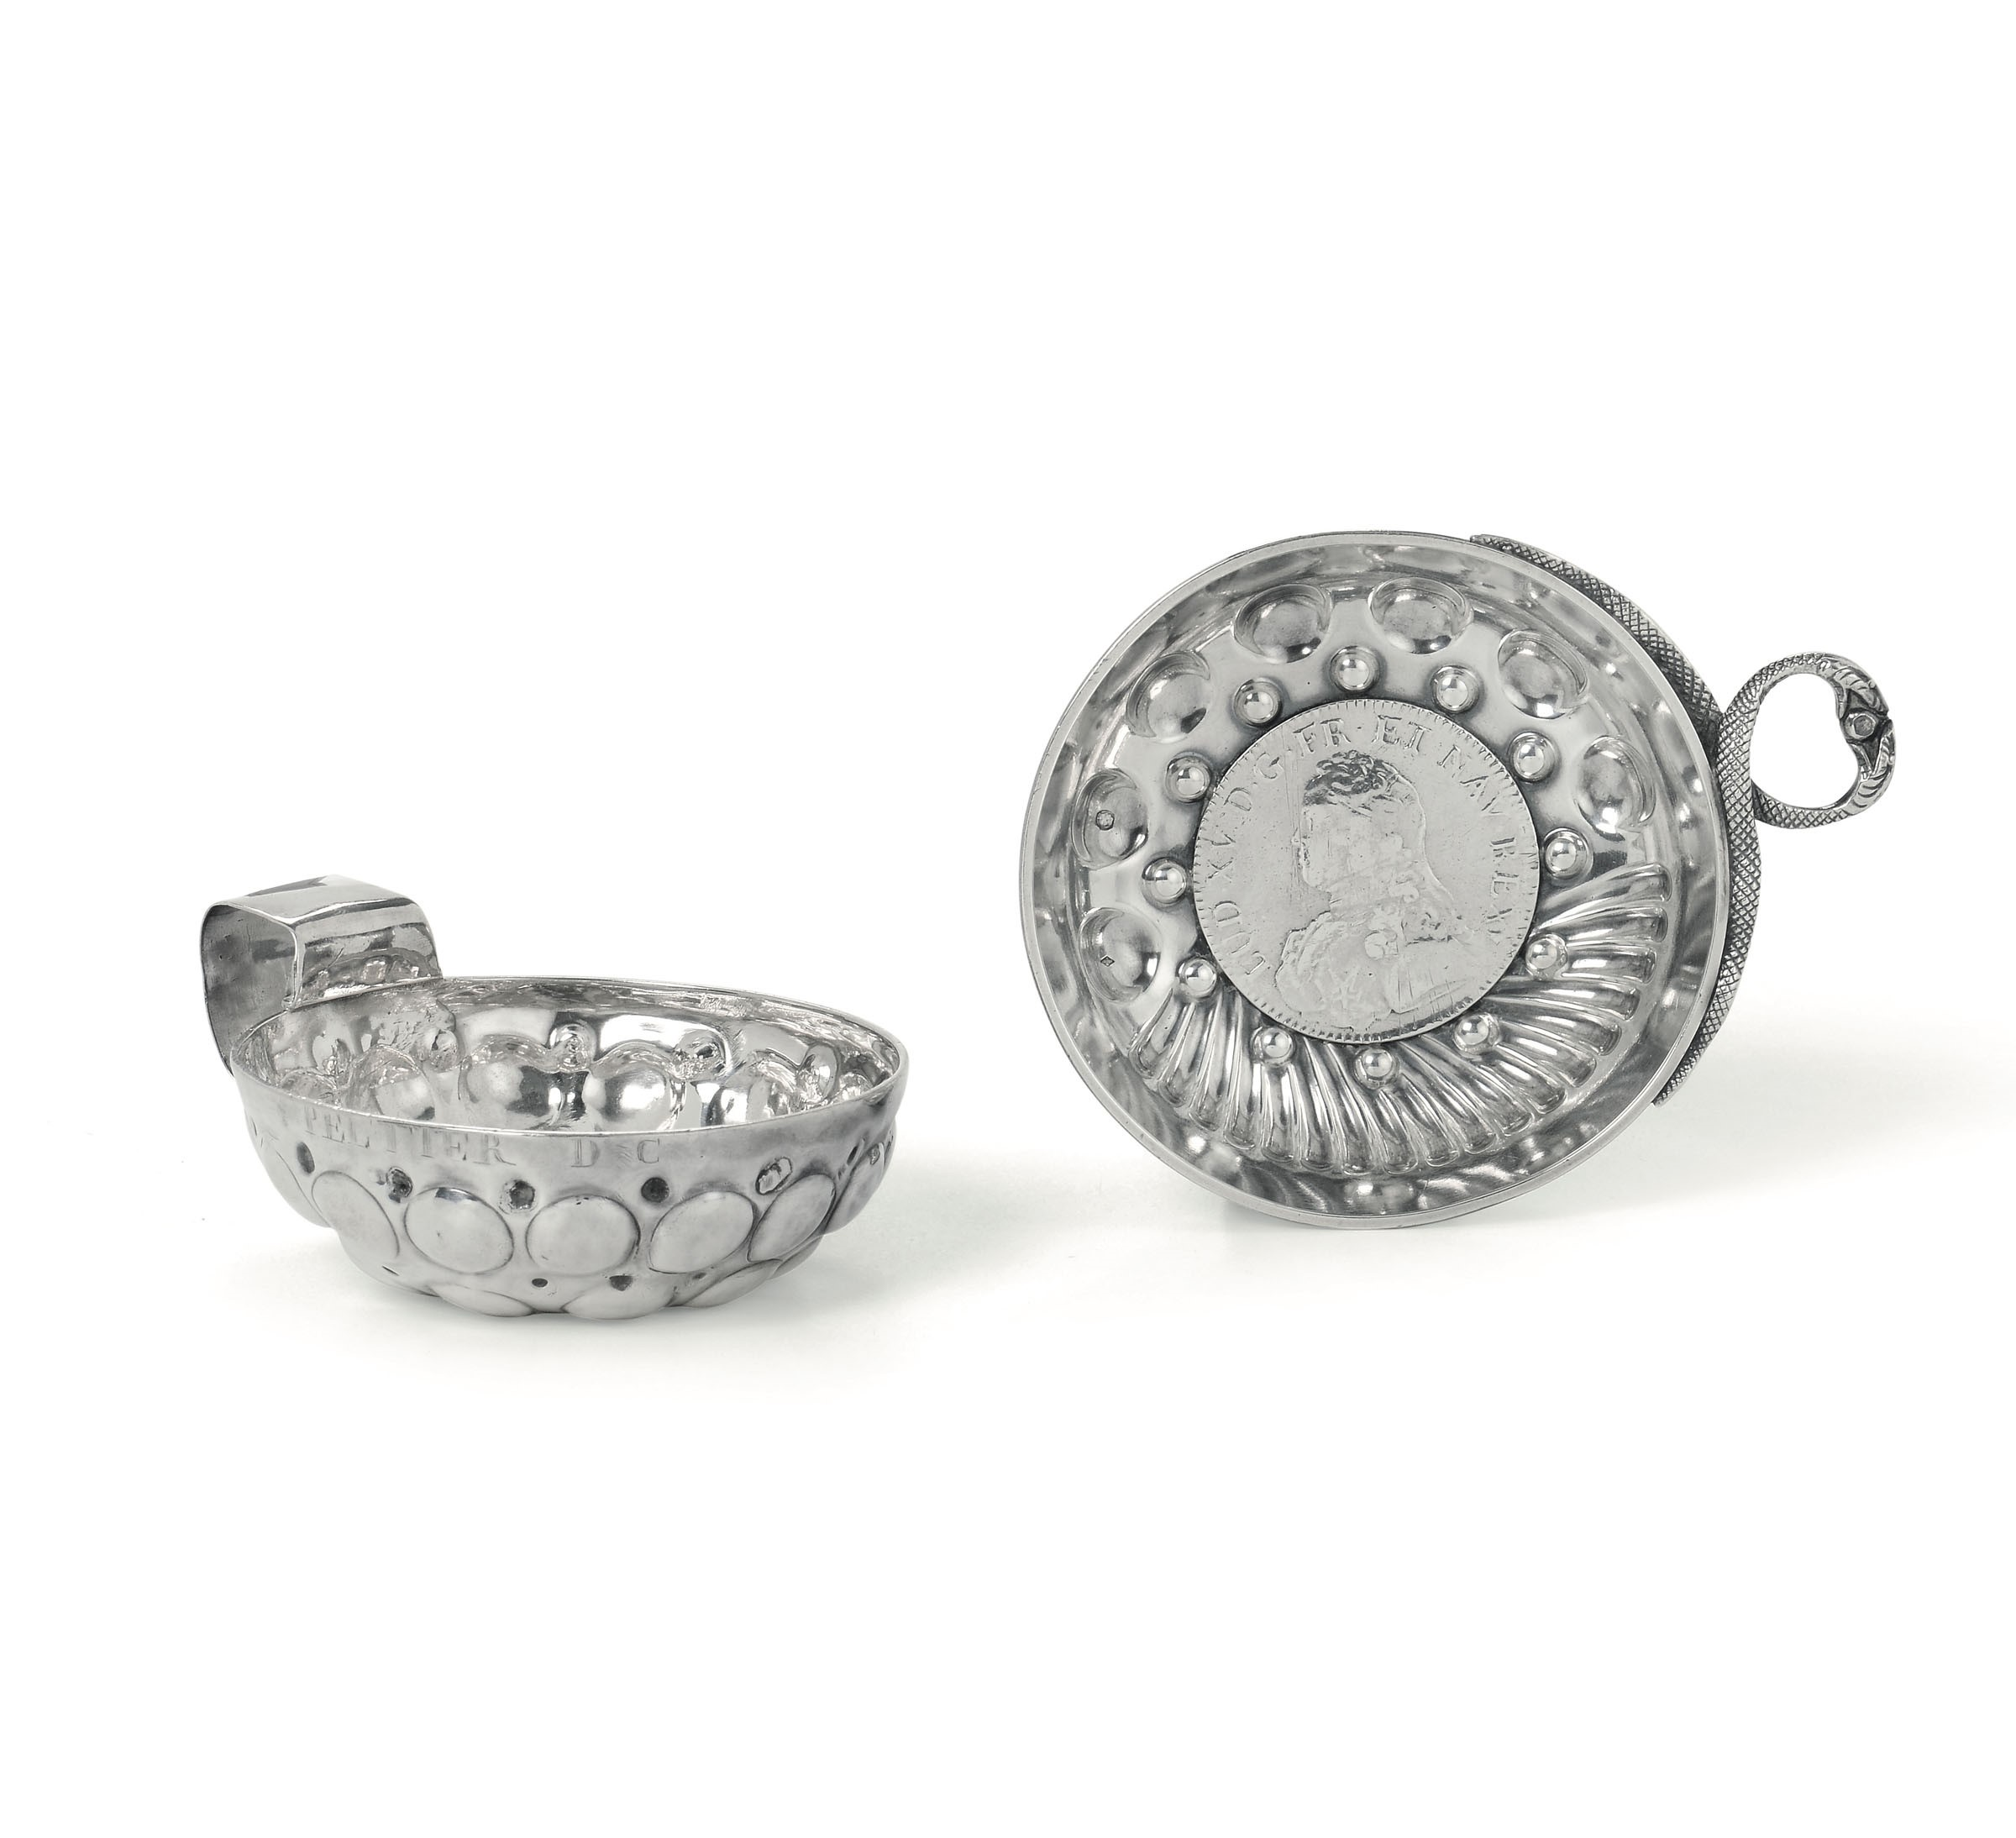 Lot 49 - Two silver tastevins, France (?), 1800s - One with an inlaid coin dated 1728. diam [...]